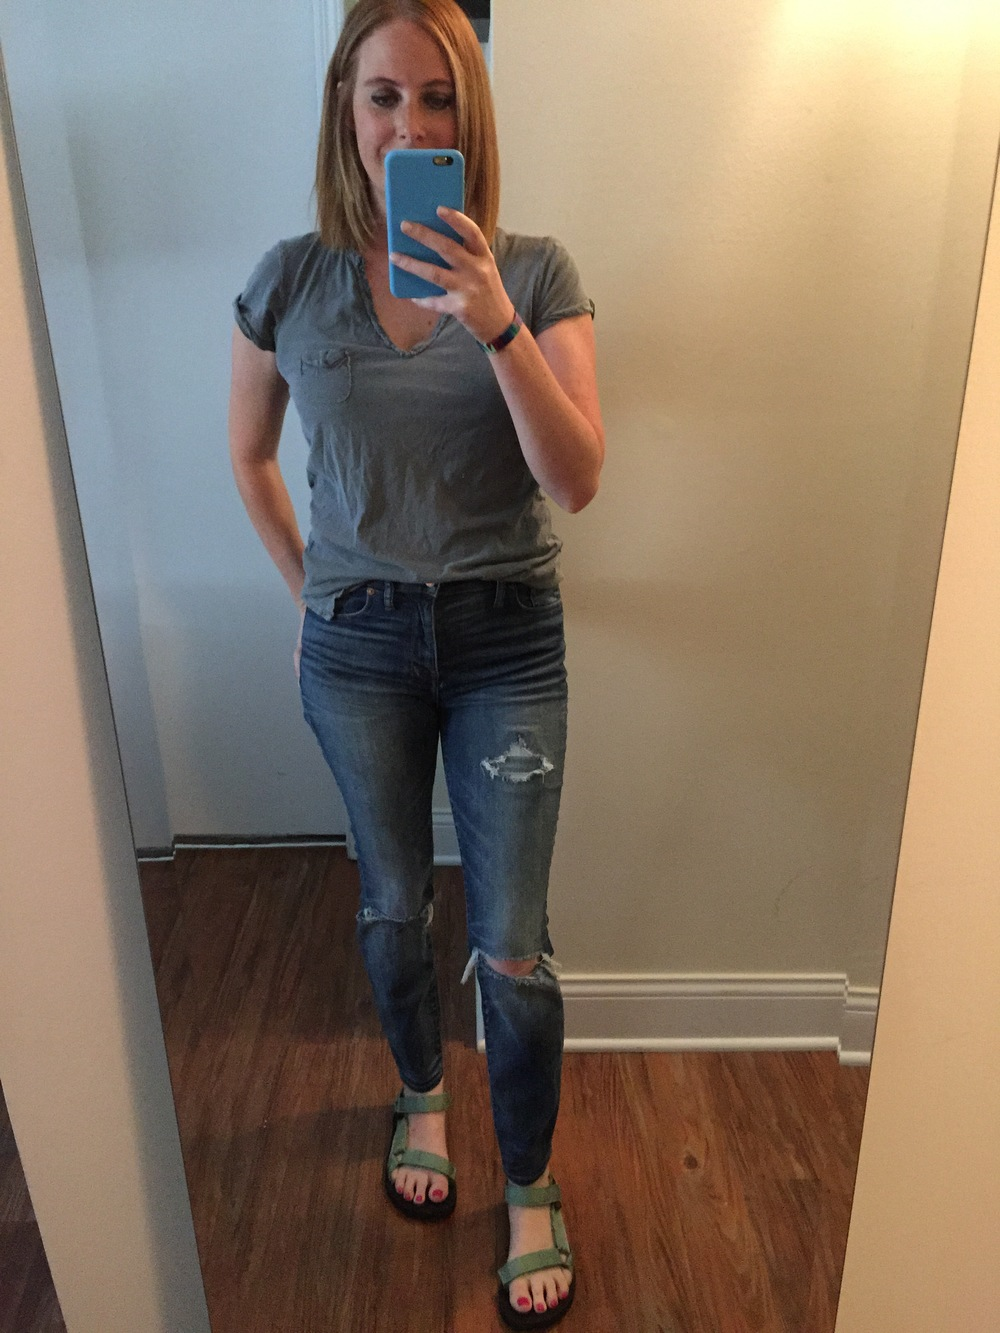 T-shirt: Anthropologie, Jeans: Madewell,  High Riser Skinny , Sandals: Teva,  Women's Original Universal Sandal